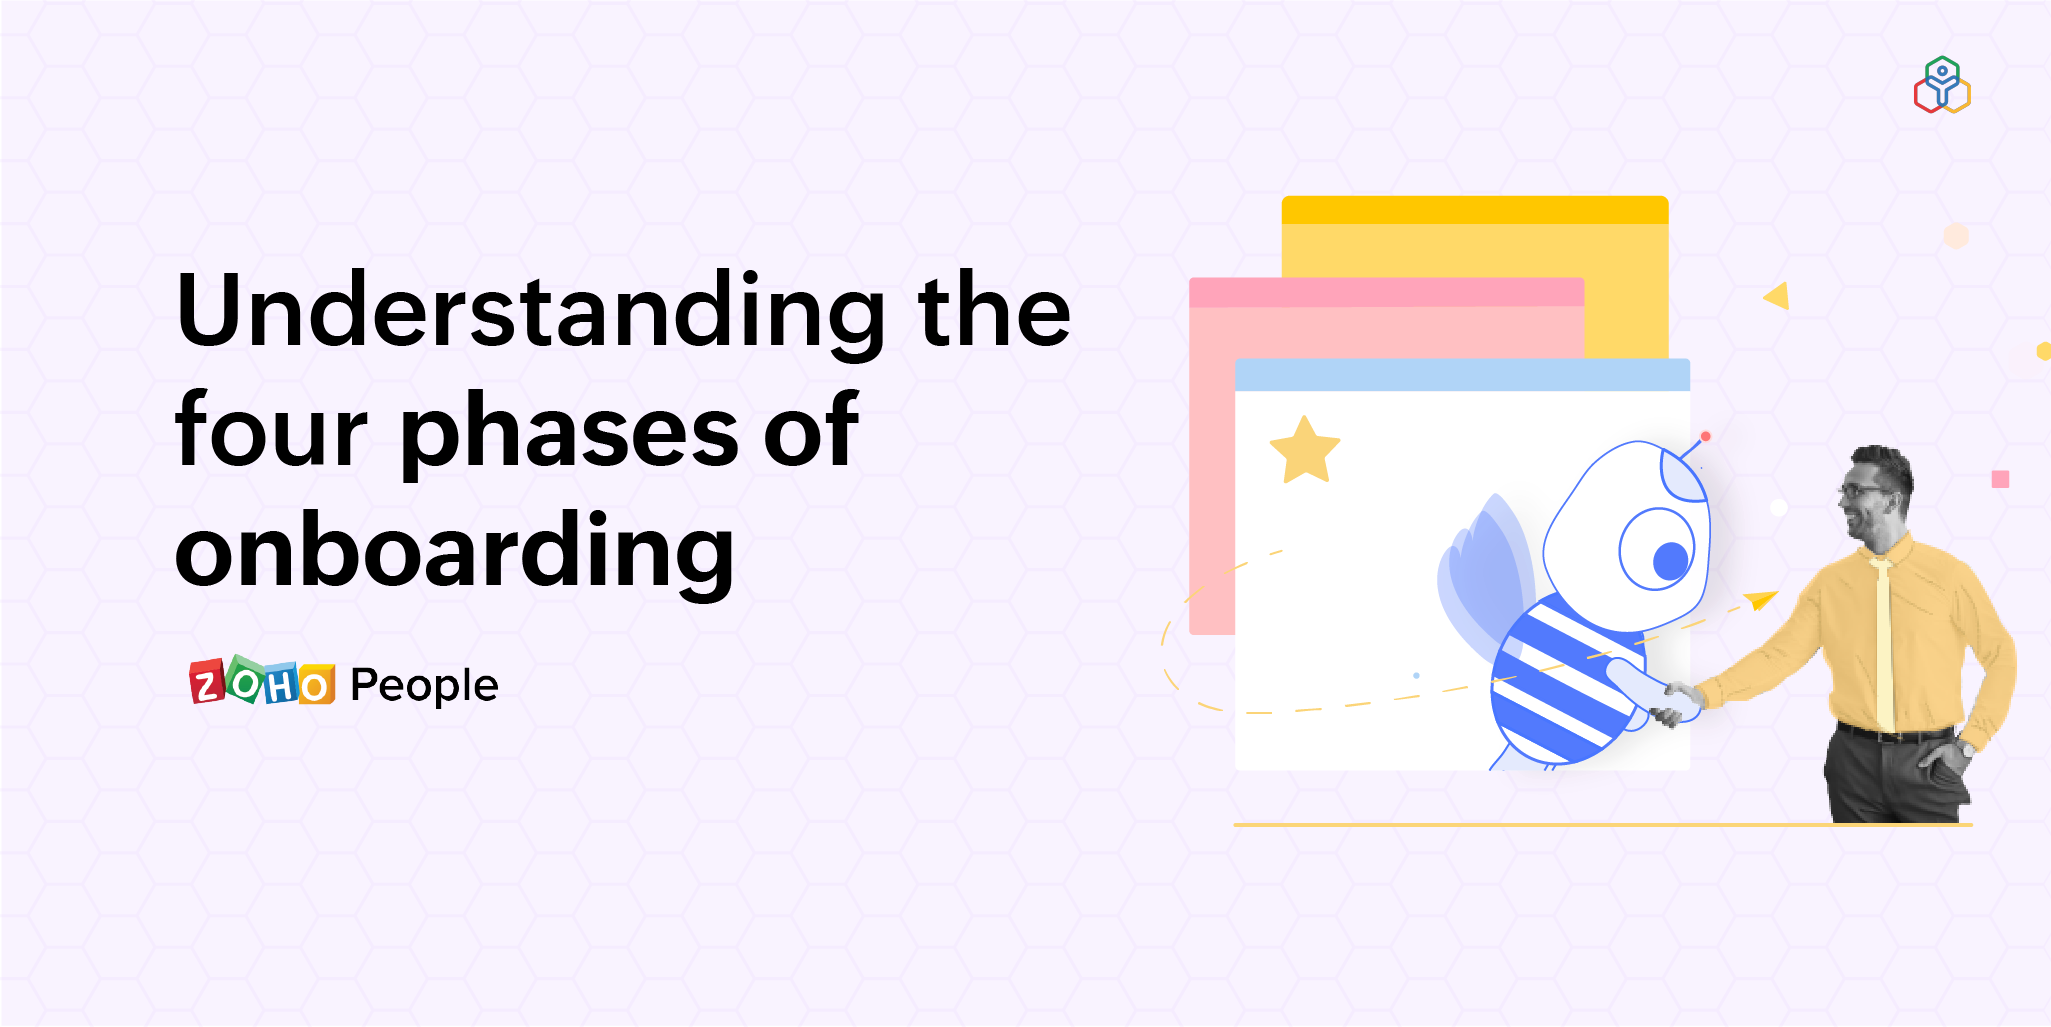 4 different phases of onboarding that matter most to a candidate